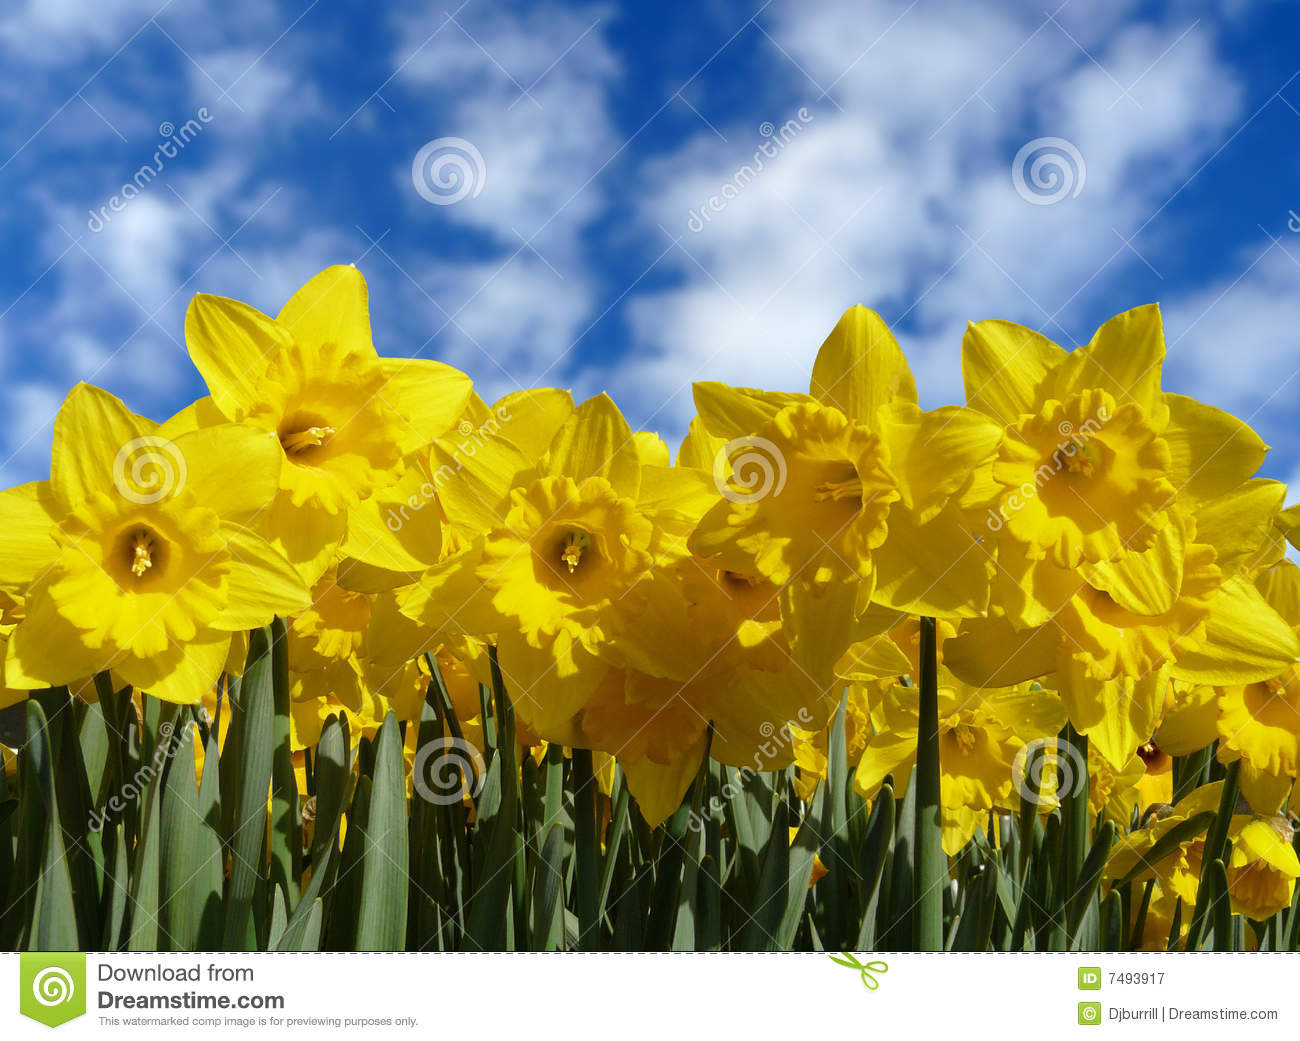 Daffodil flowers in bloom stock image  Image of narcissus   7493917 Download Daffodil flowers in bloom stock image  Image of narcissus   7493917